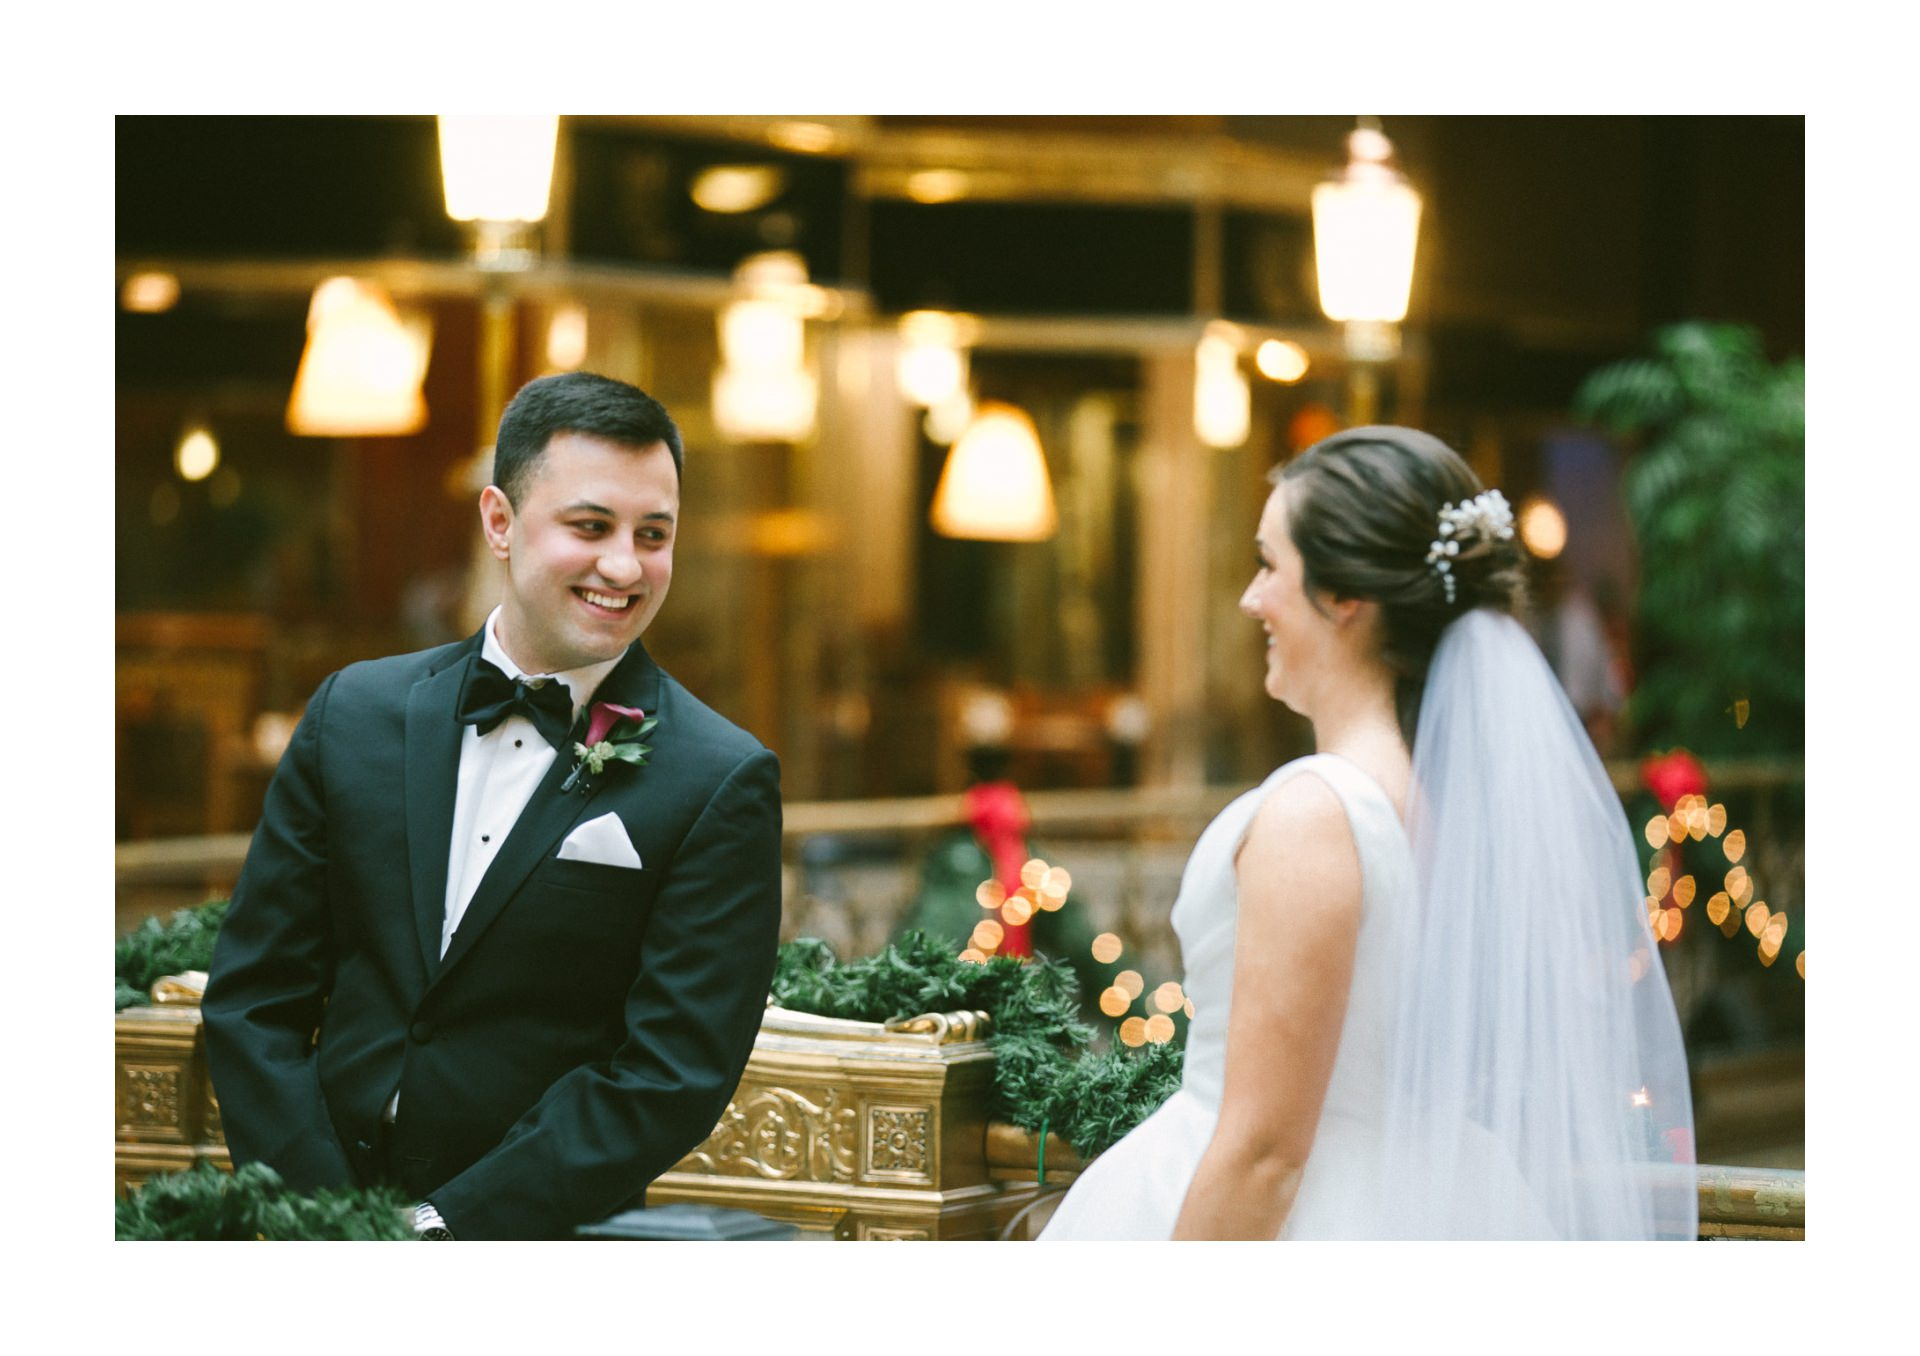 Hyatt Old Arcade Wedding Photographer in Cleveland 1 24.jpg